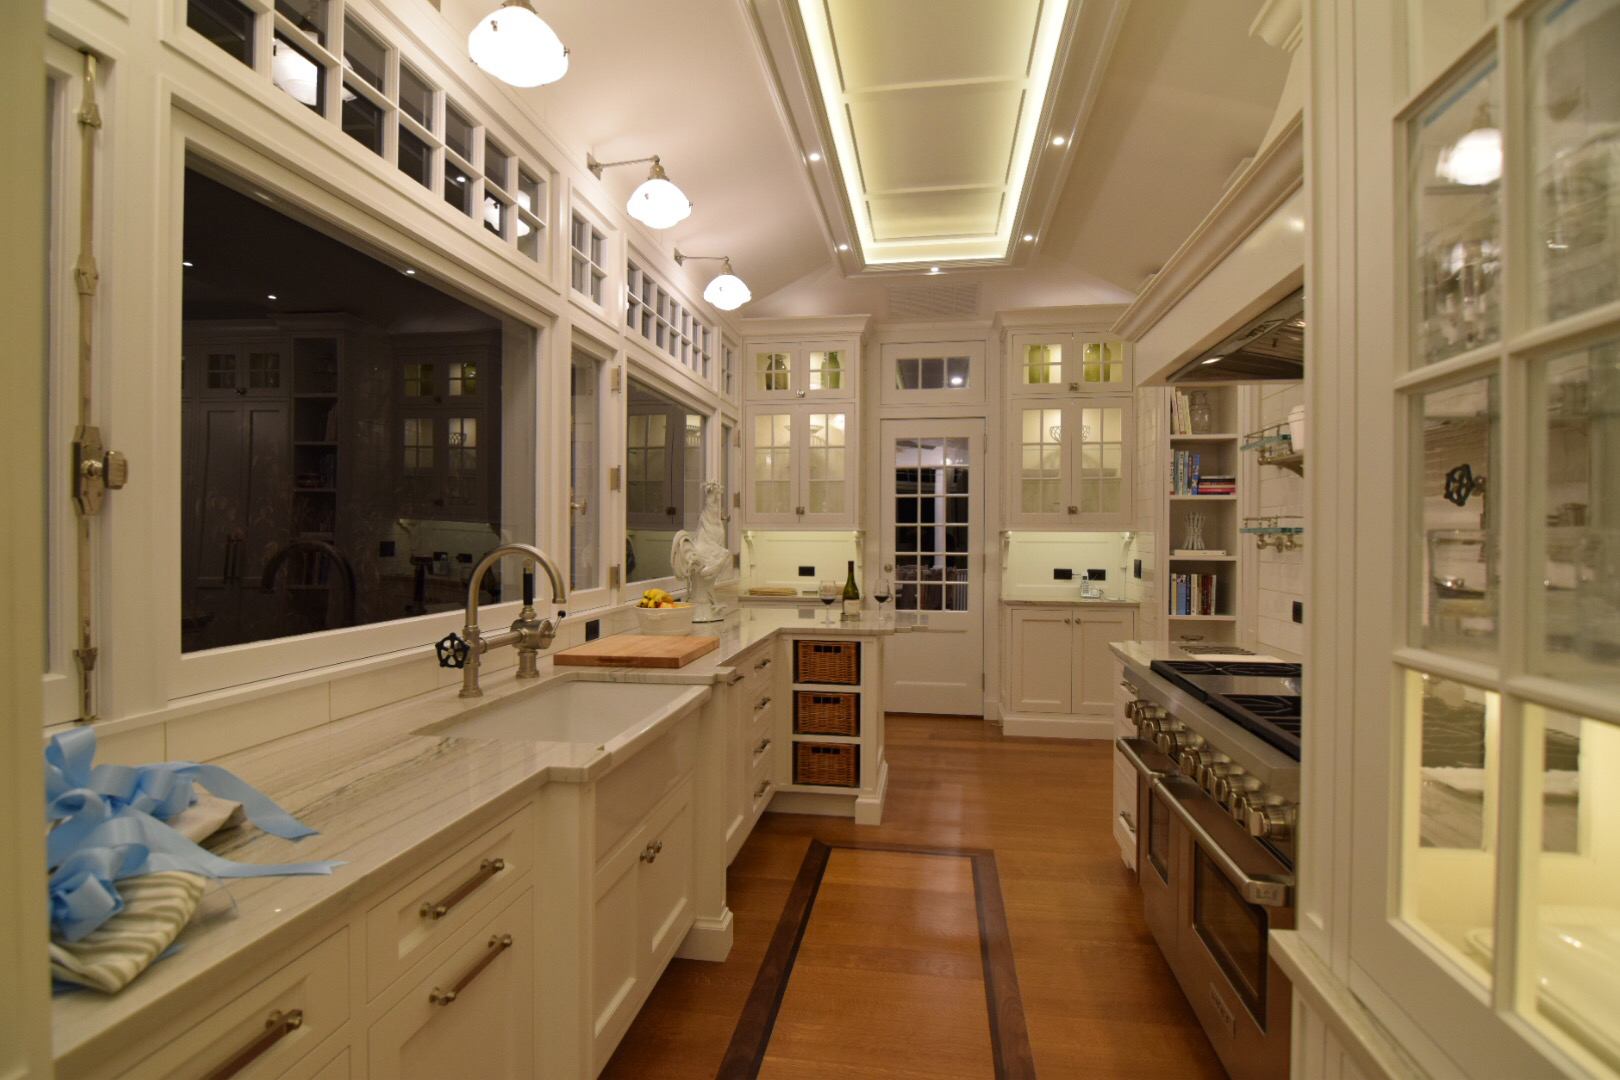 custom-traditional-kitchen-face-frame-with-inset-cabinet-doors-and-custom-architectural-doors-windows-and-transoms.jpg